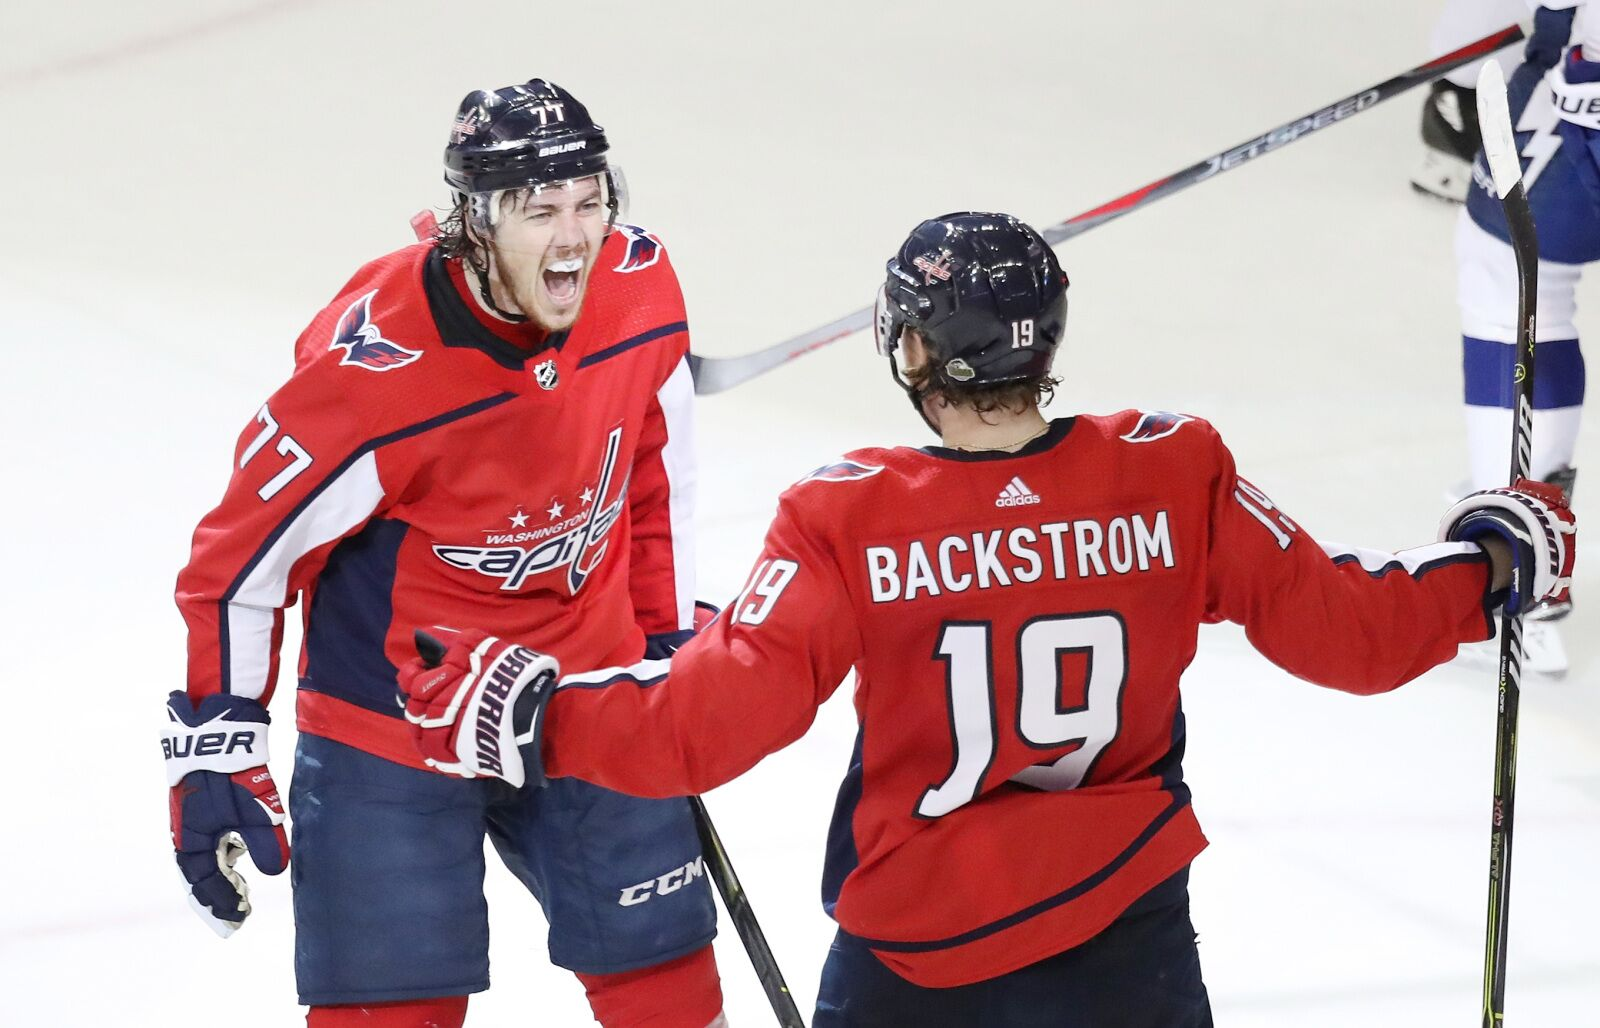 bae52e2b6 Washington Capitals: Nicklas Backstrom gets patience rewarded